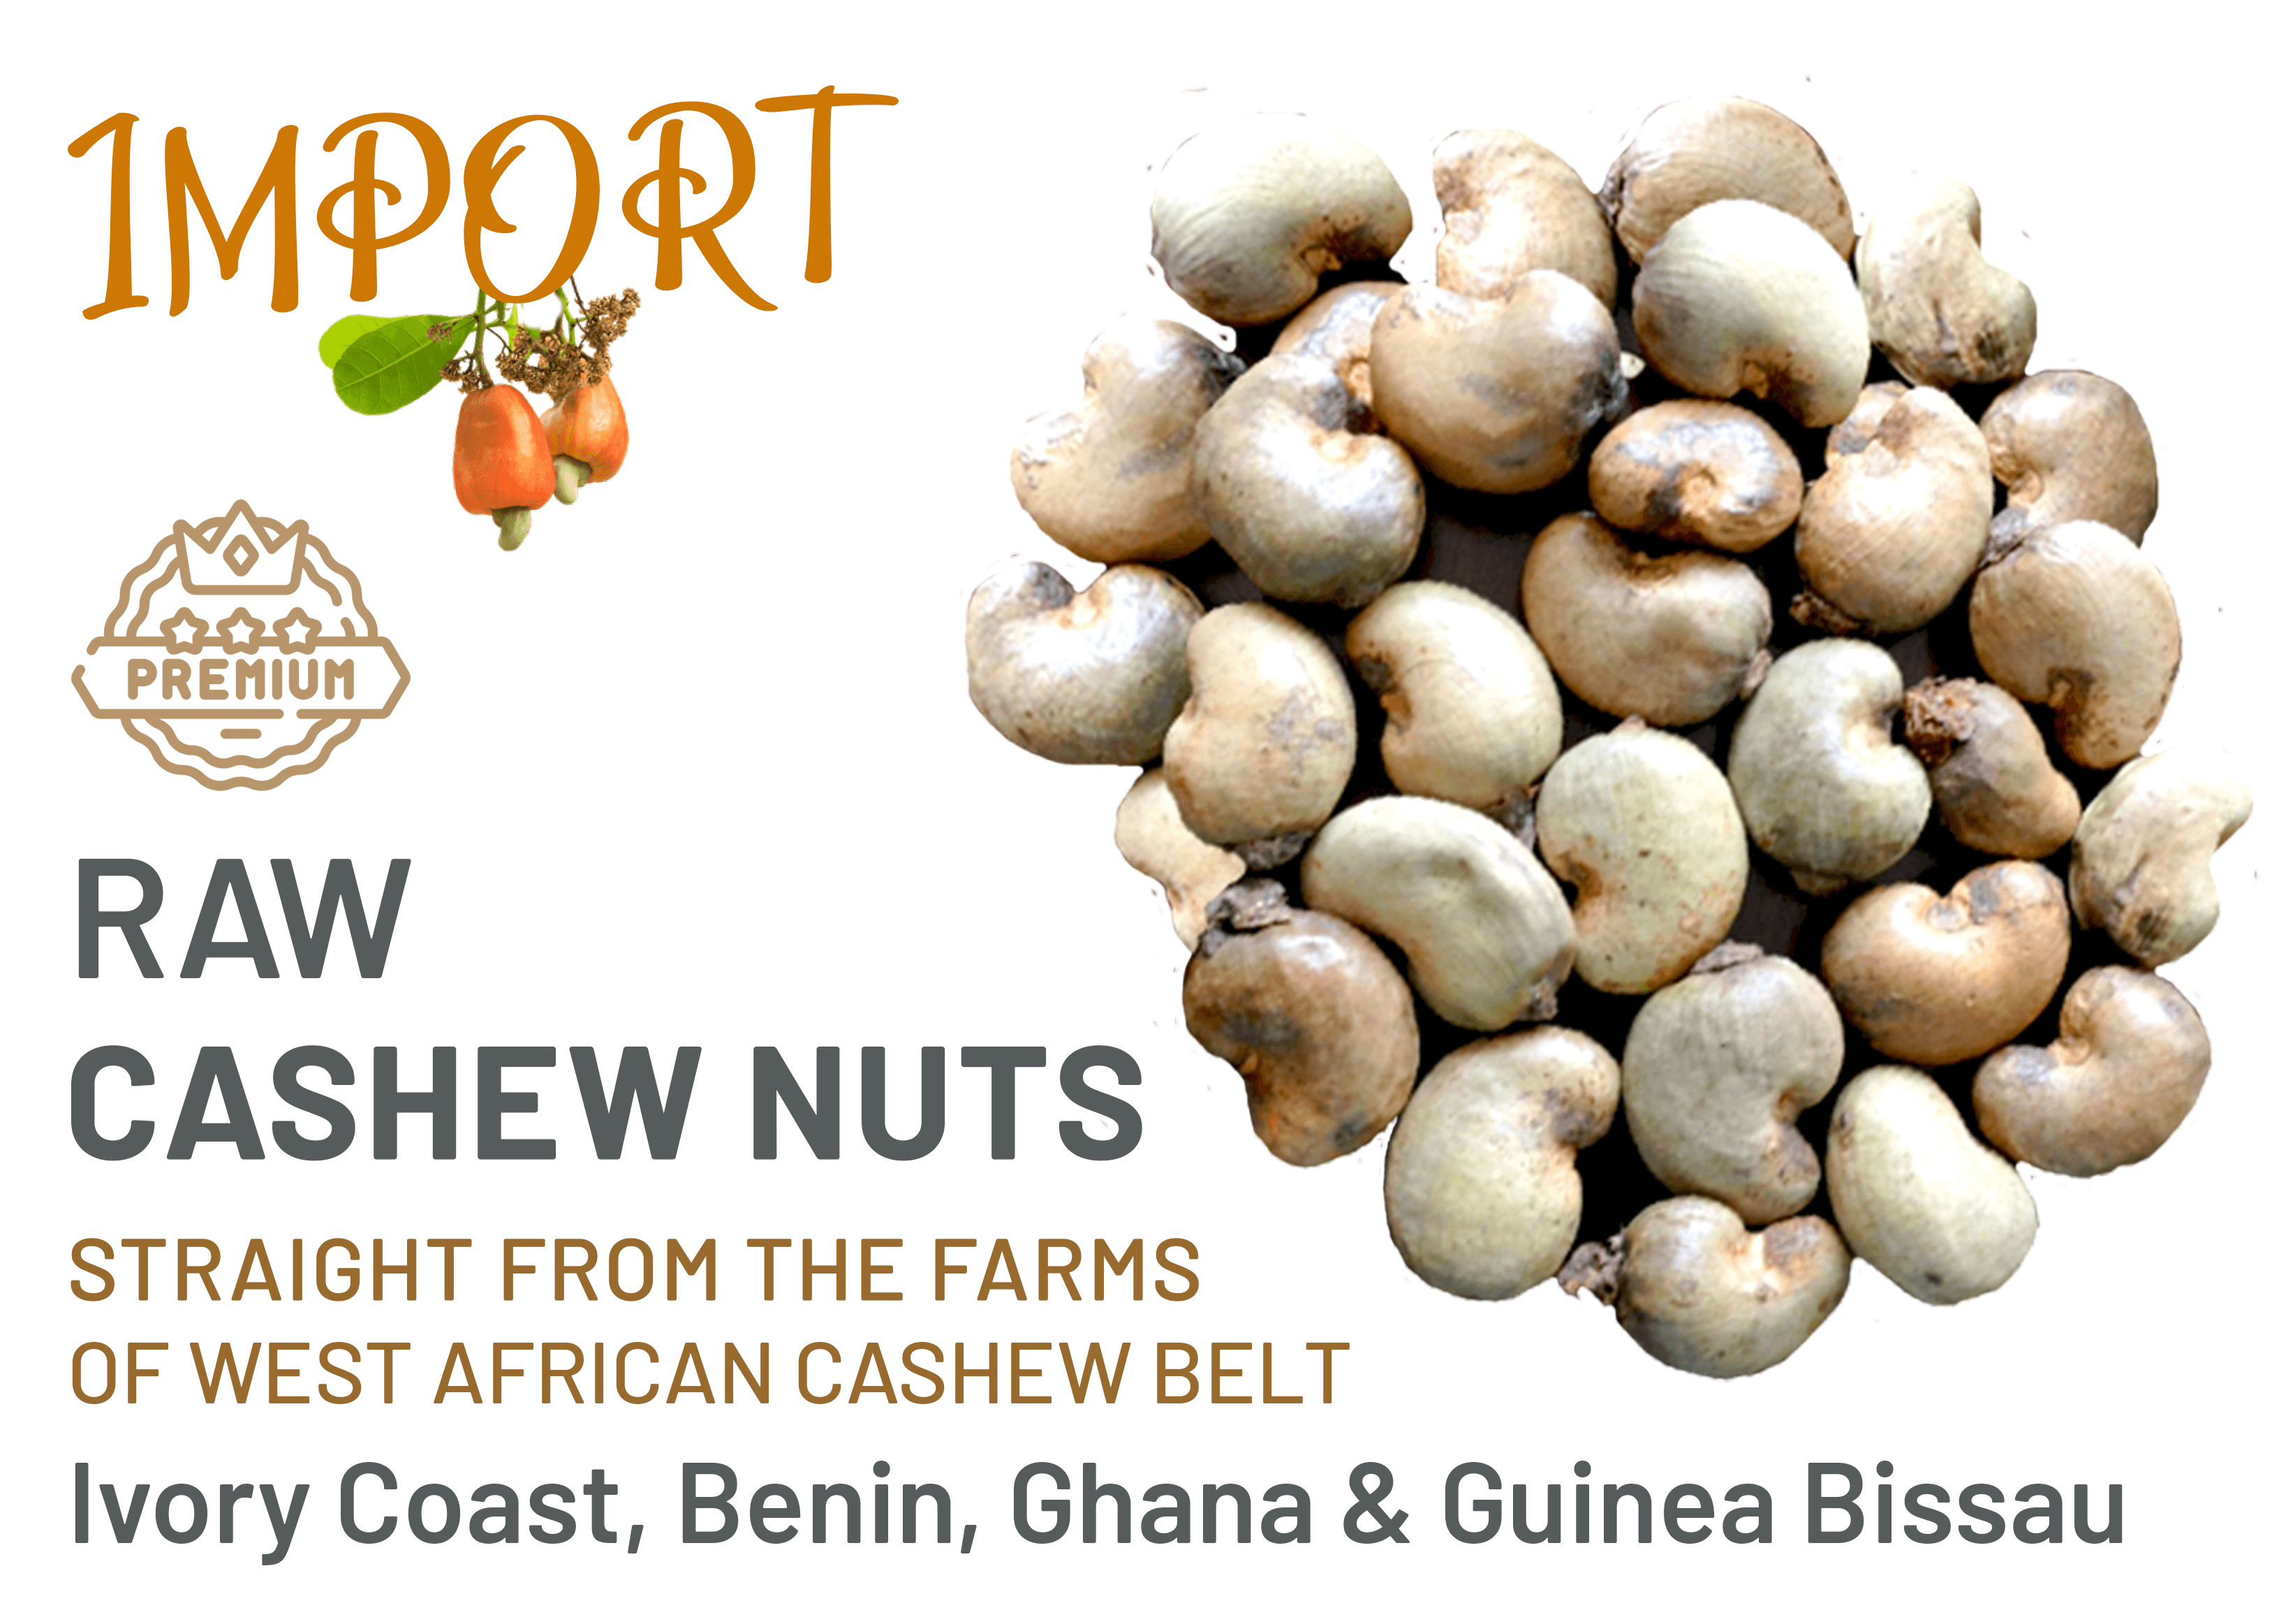 Raw Cashew Nuts and RCN Importers in India